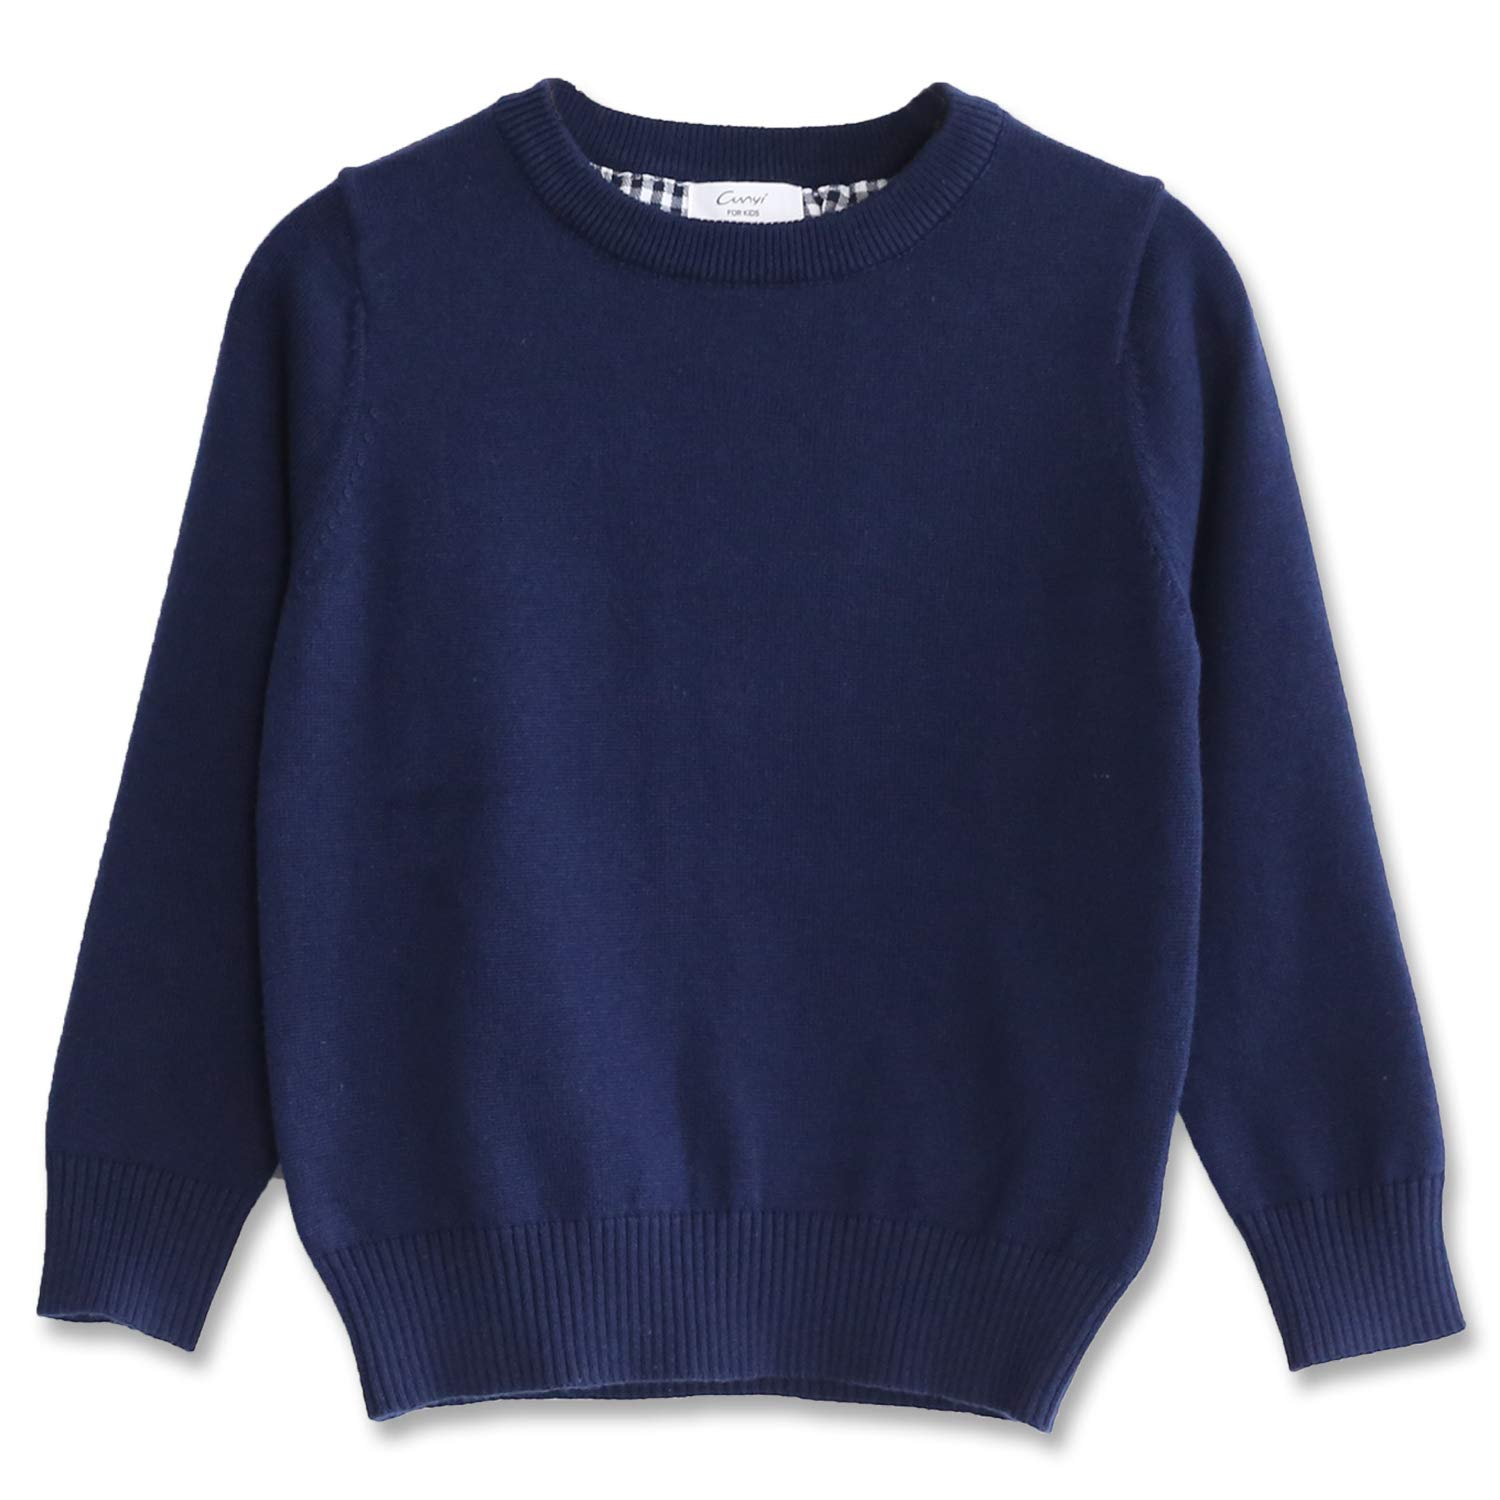 CUNYI Boys' Long Sleeve Crew Neck Cotton Pullover Knit Sweater, Navy Blue, 120